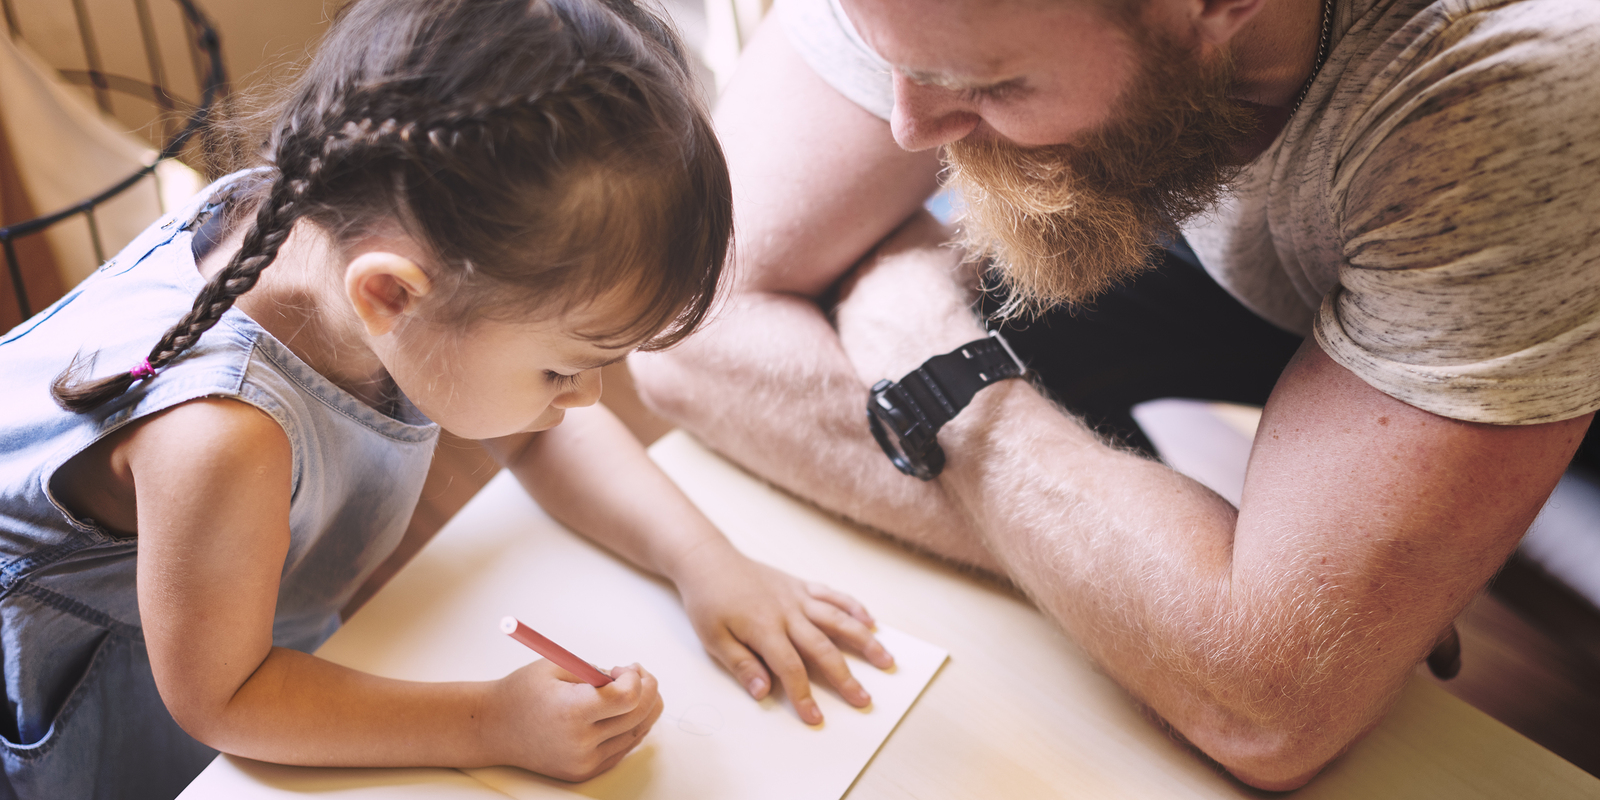 Here are five things dads want us to know about mothering.